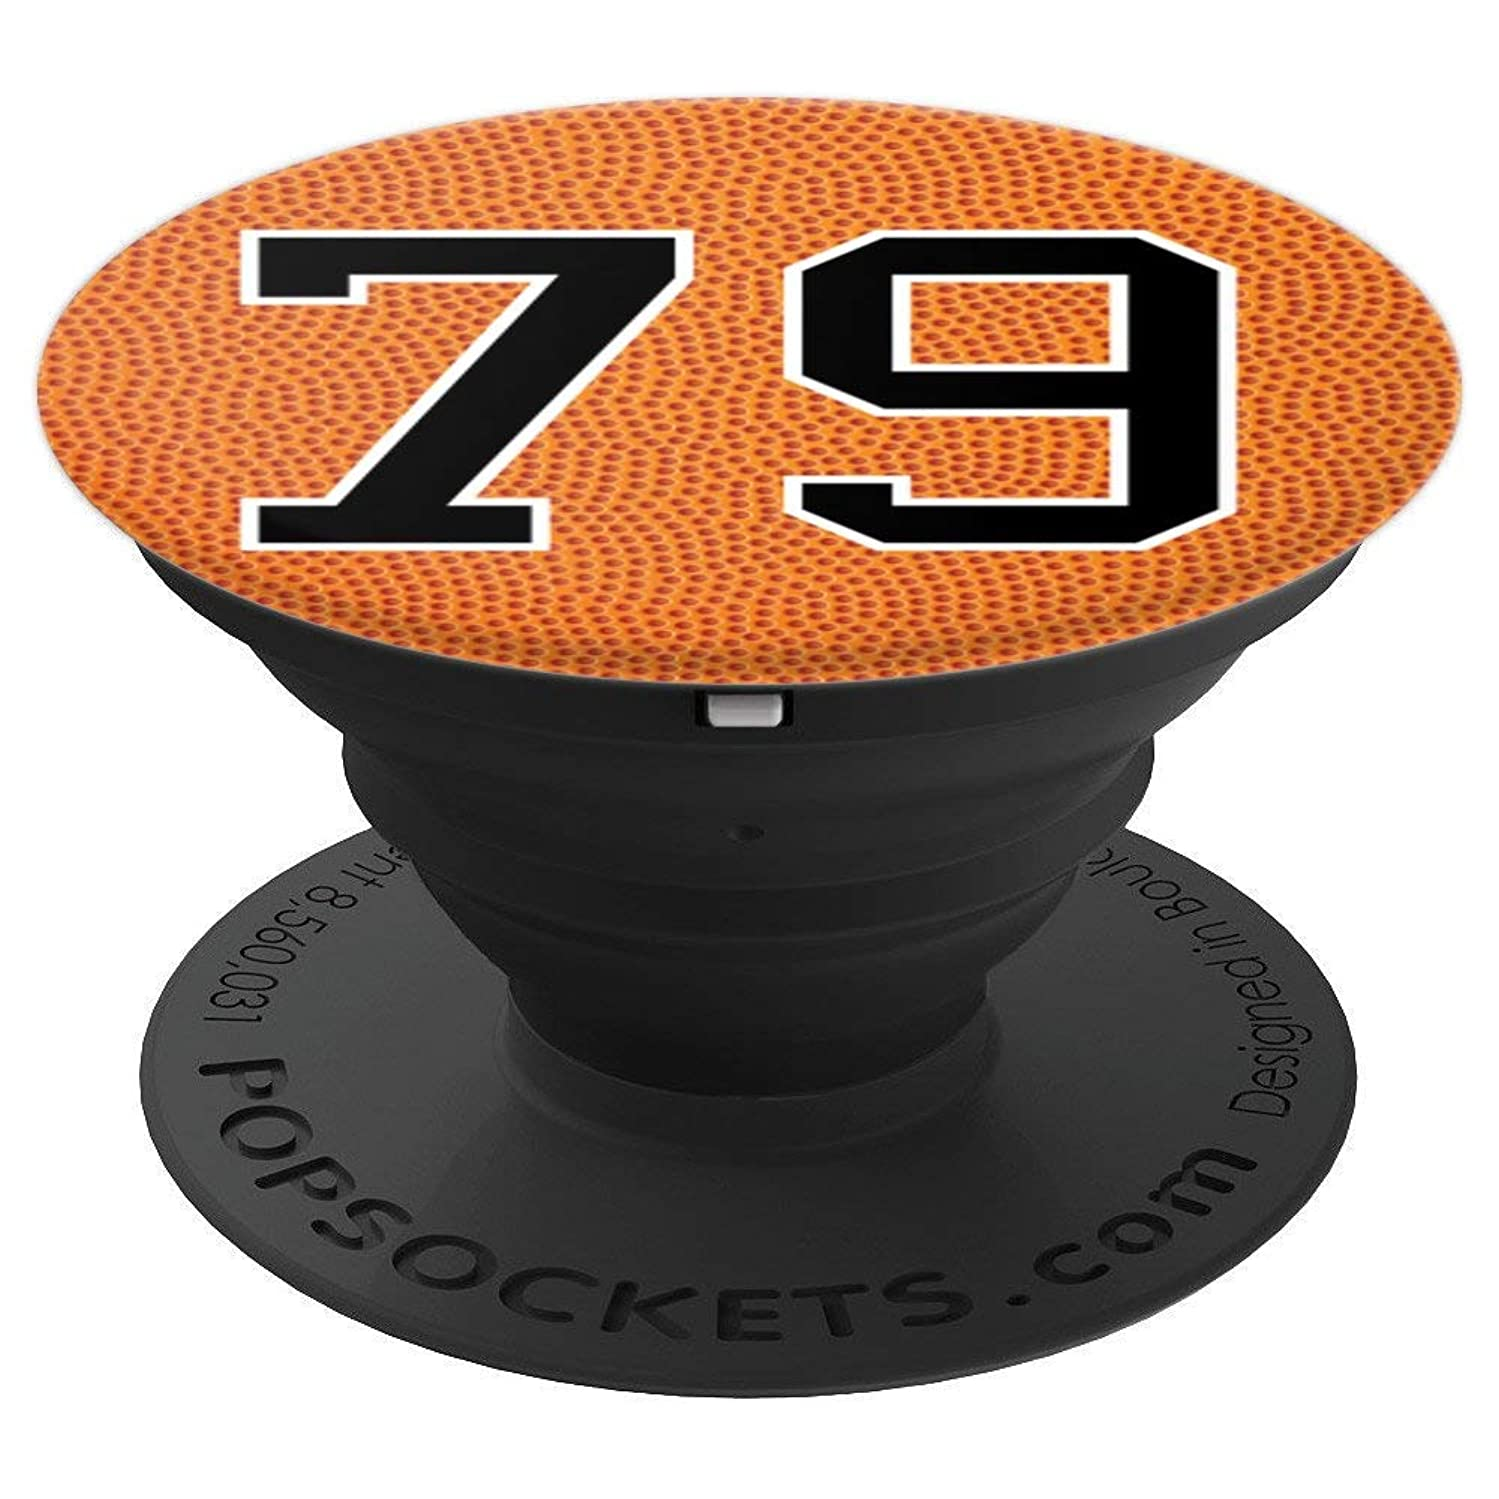 Basketball Number 79 Jersey Uniform Gift For Men Women - PopSockets Grip and Stand for Phones and Tablets